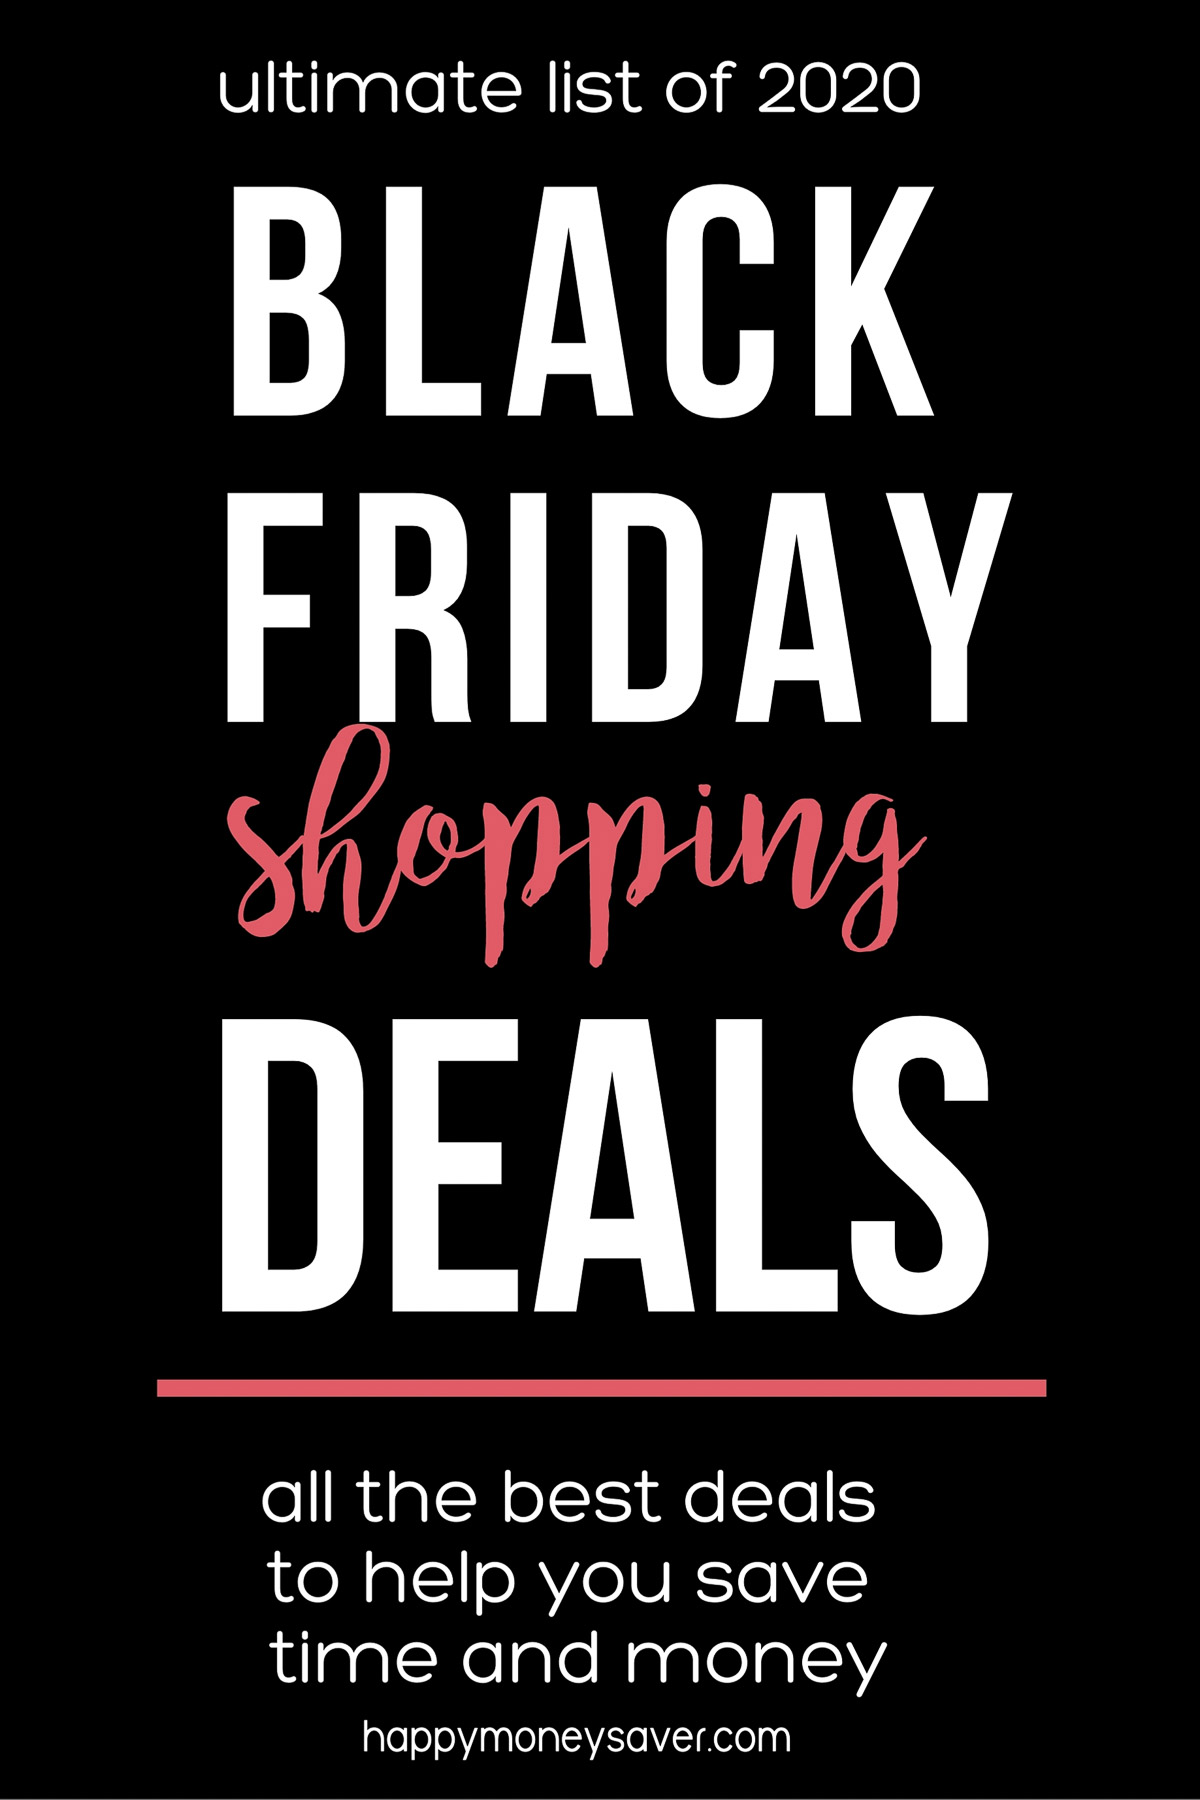 Black Friday Deals 2020 word graphic on black background from happymoneysaver.com